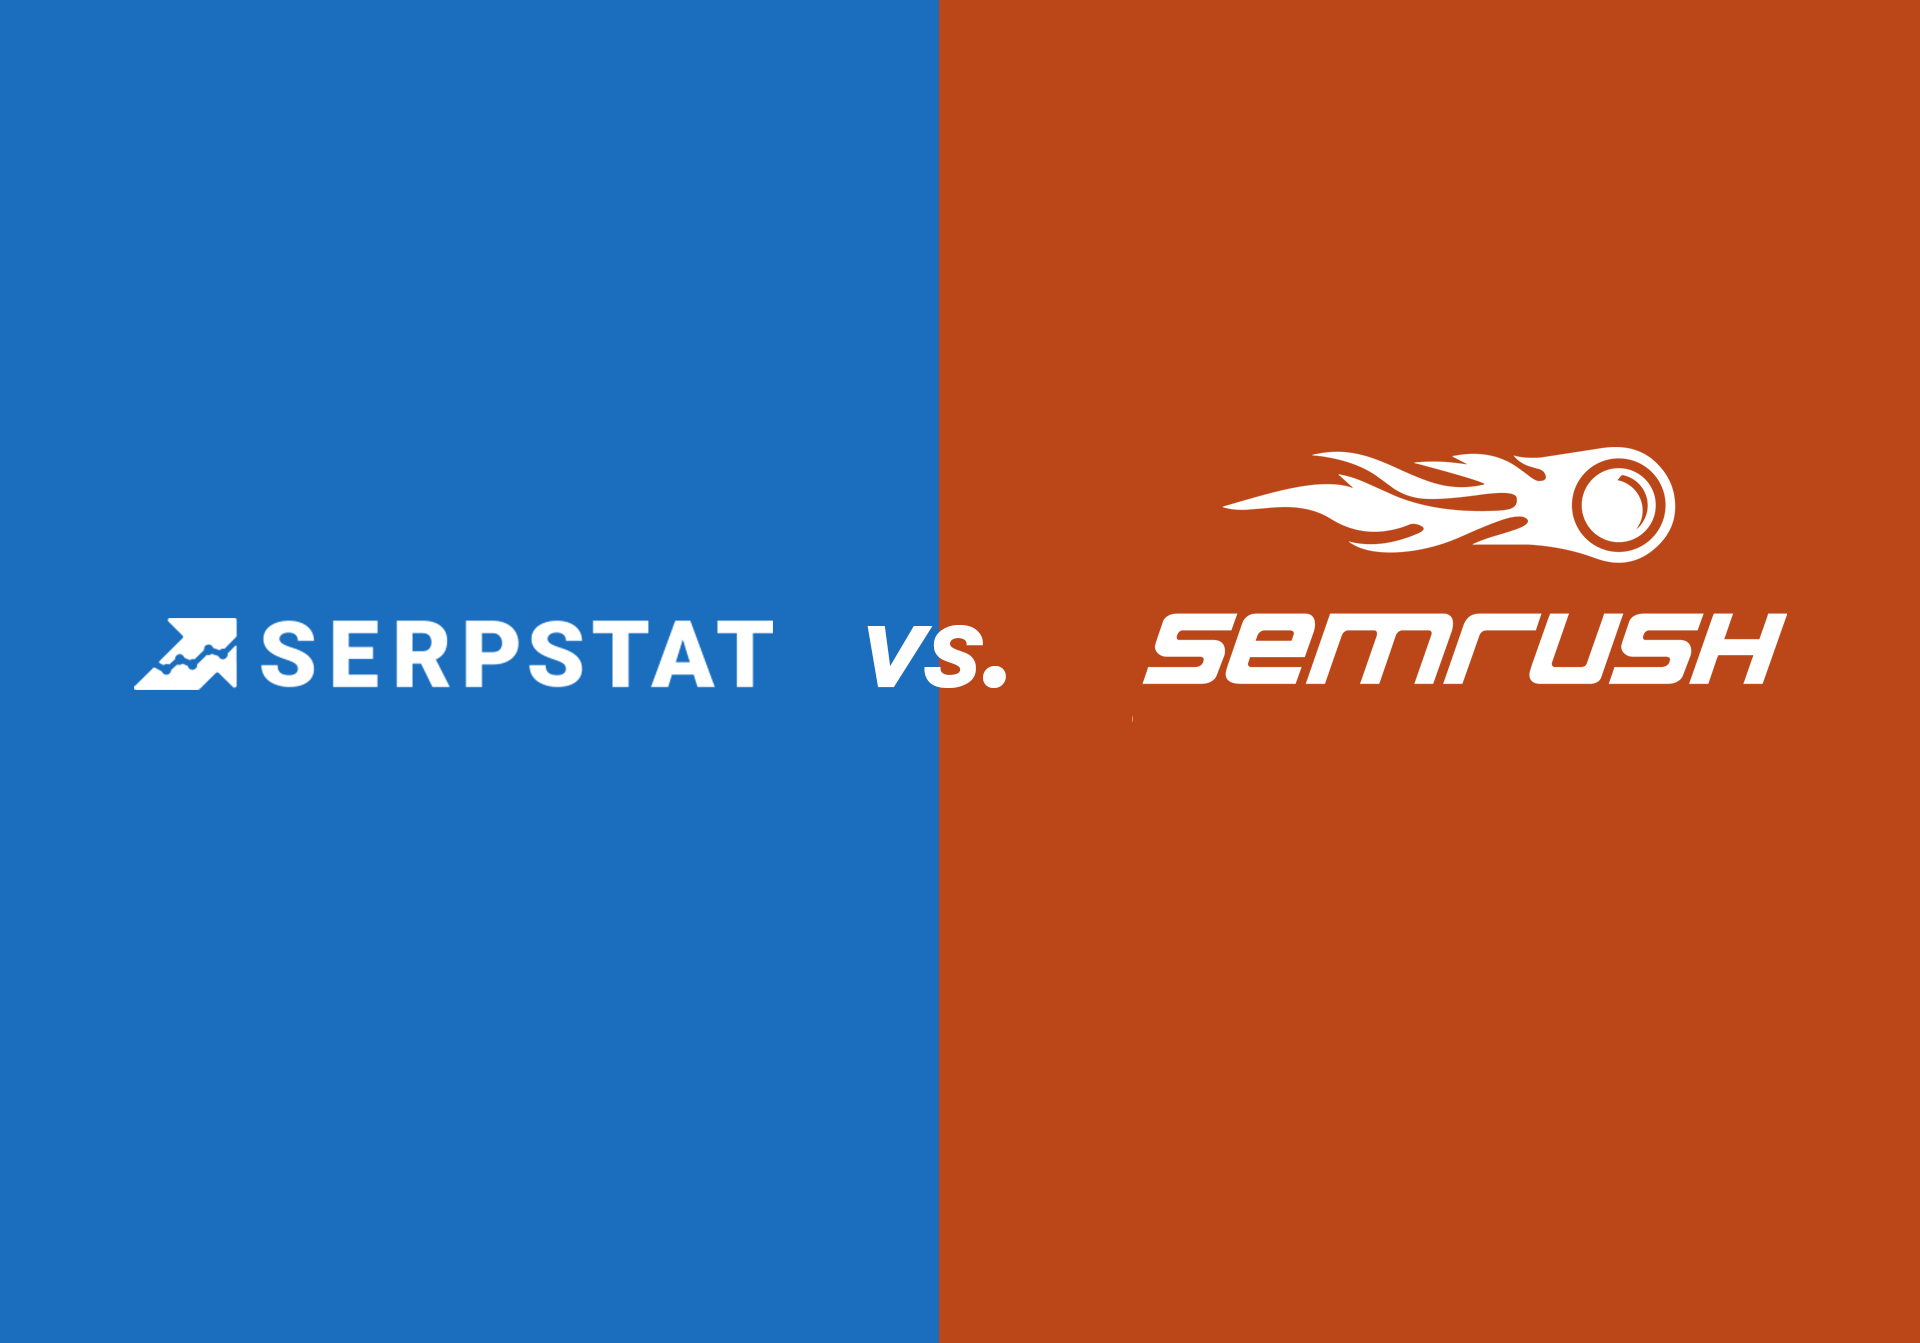 Seo Software Semrush Warranty Policy